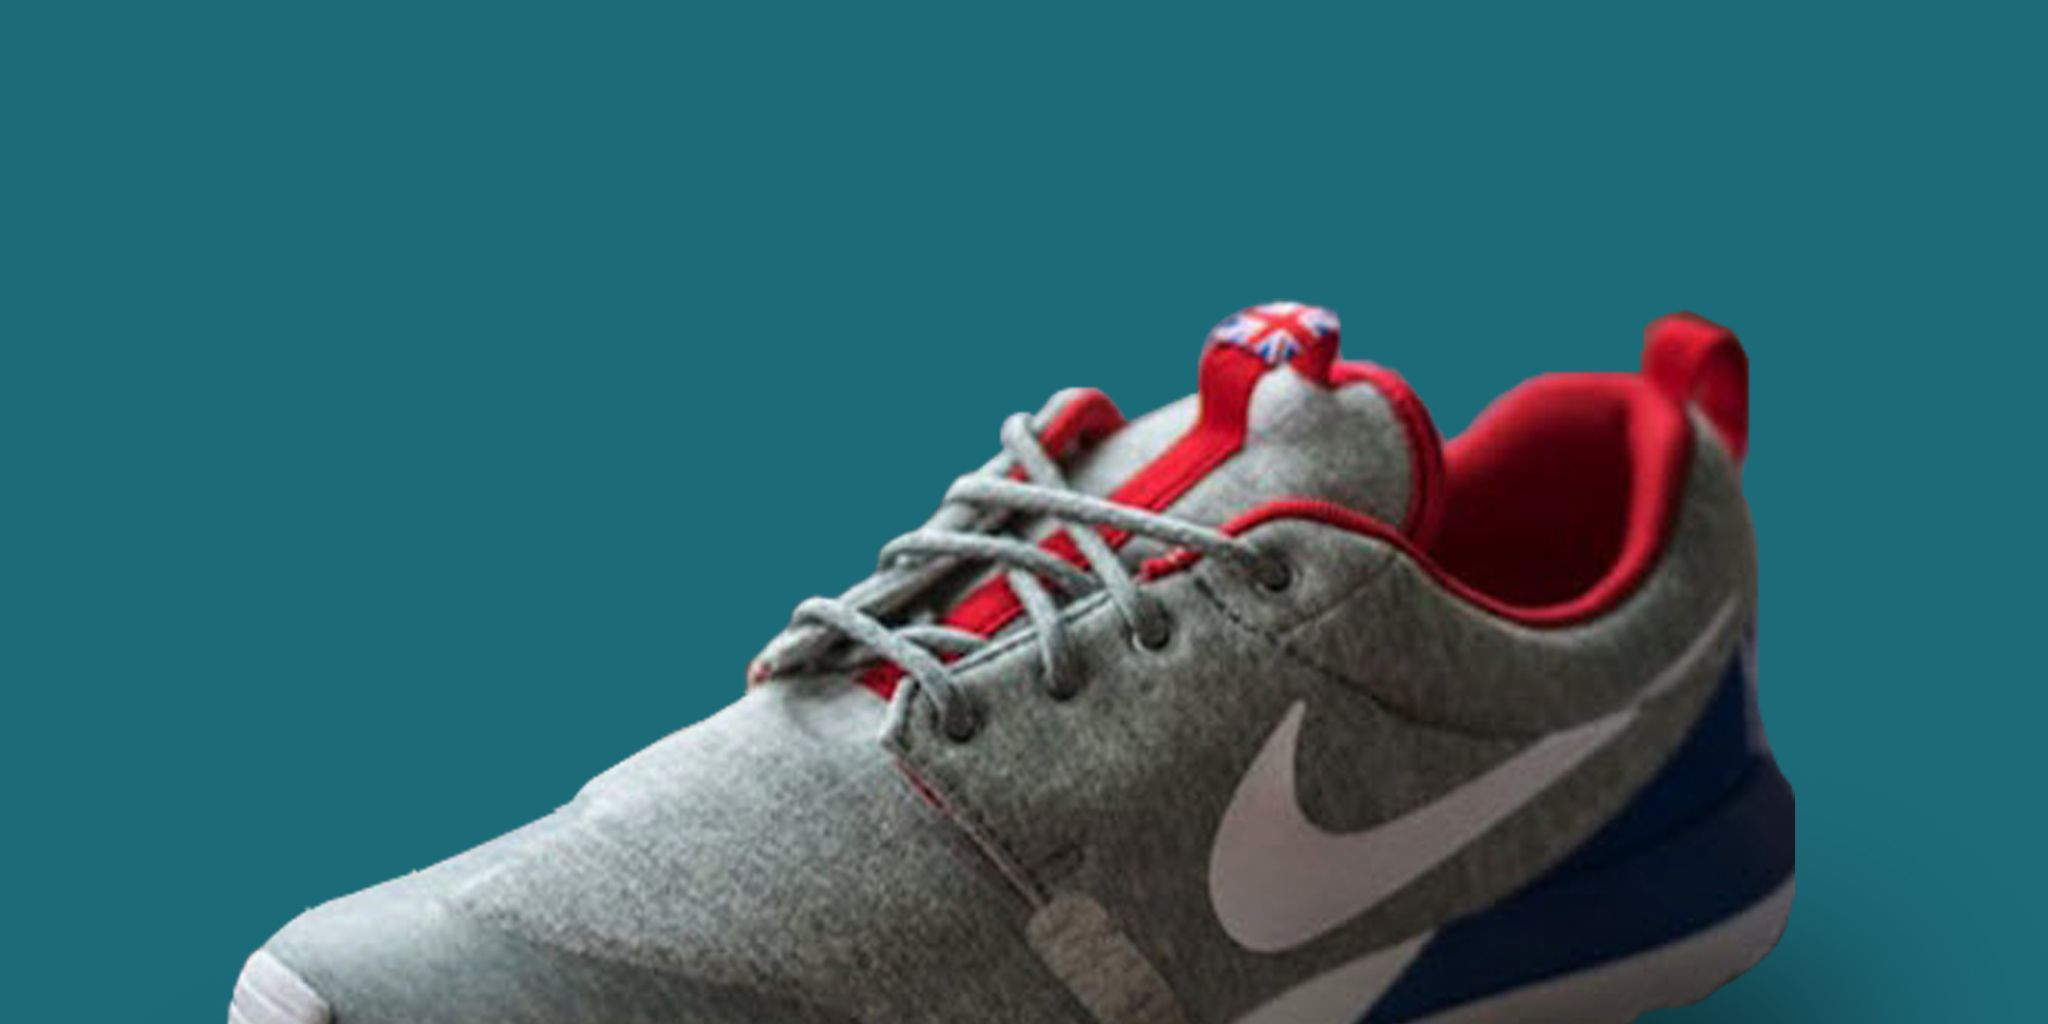 separation shoes 09ac3 fa440 cheapest free hyperfeel run sp limited edition nike nikes latest is both  lightweight and patriotic 6b9ad